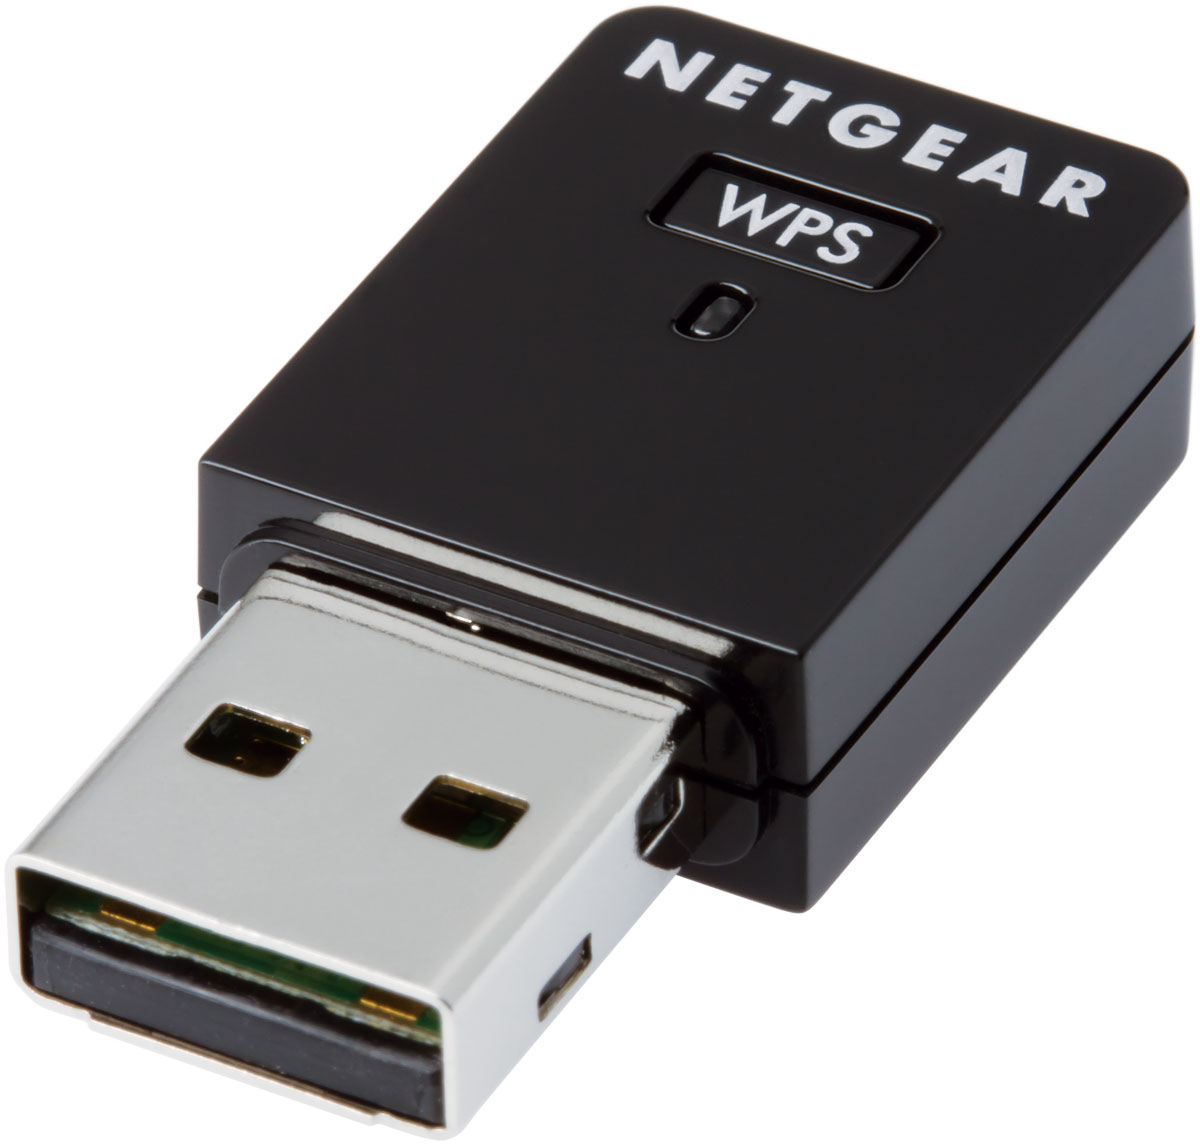 netgear wireless n300 usb adapter driver download